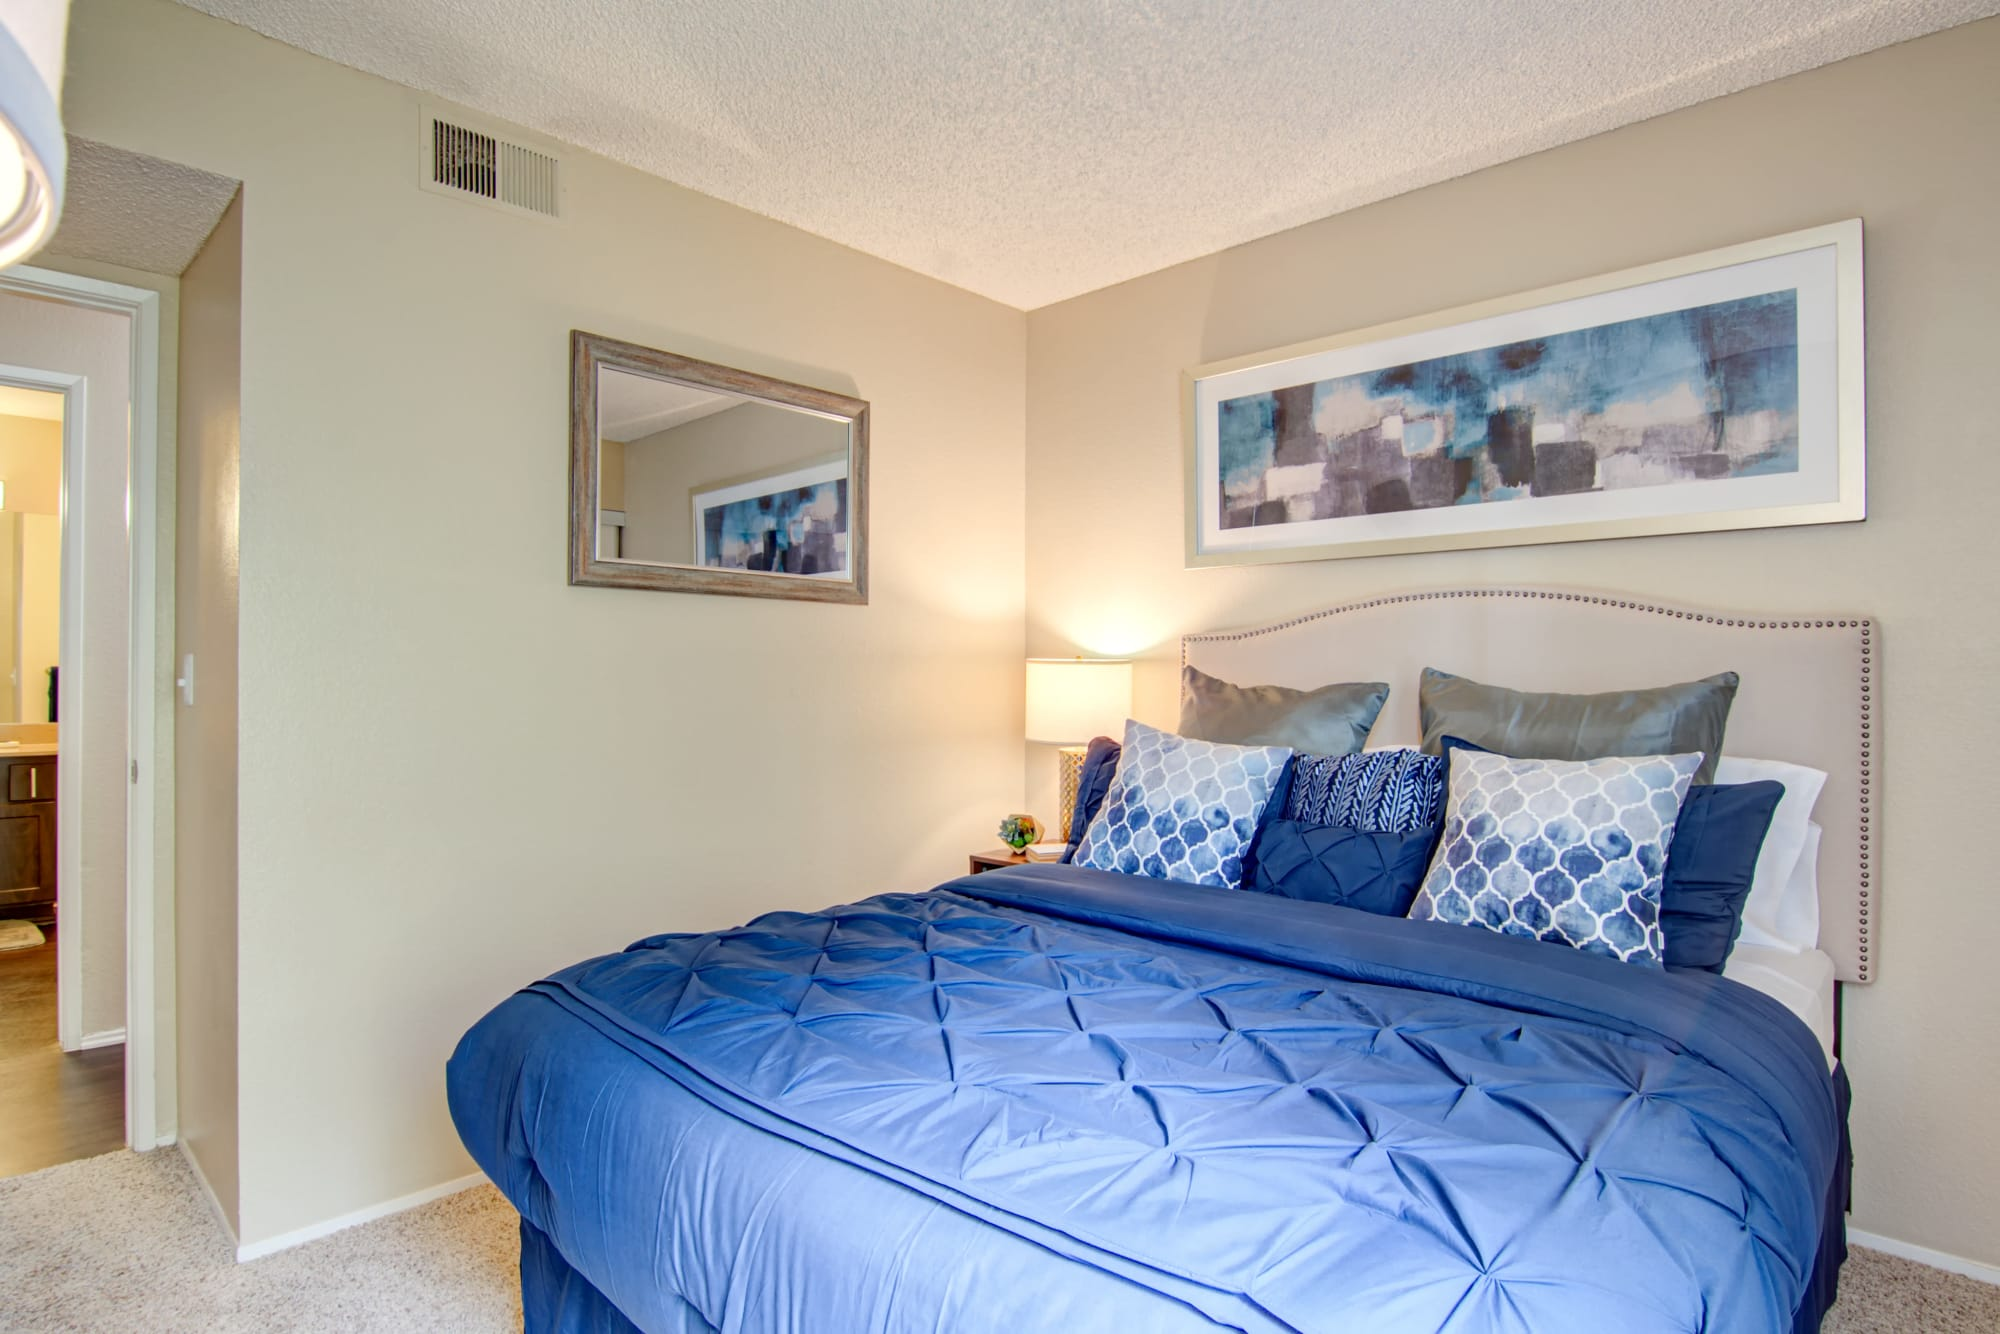 A bedroom at Lakeview Village Apartments in Spring Valley, California